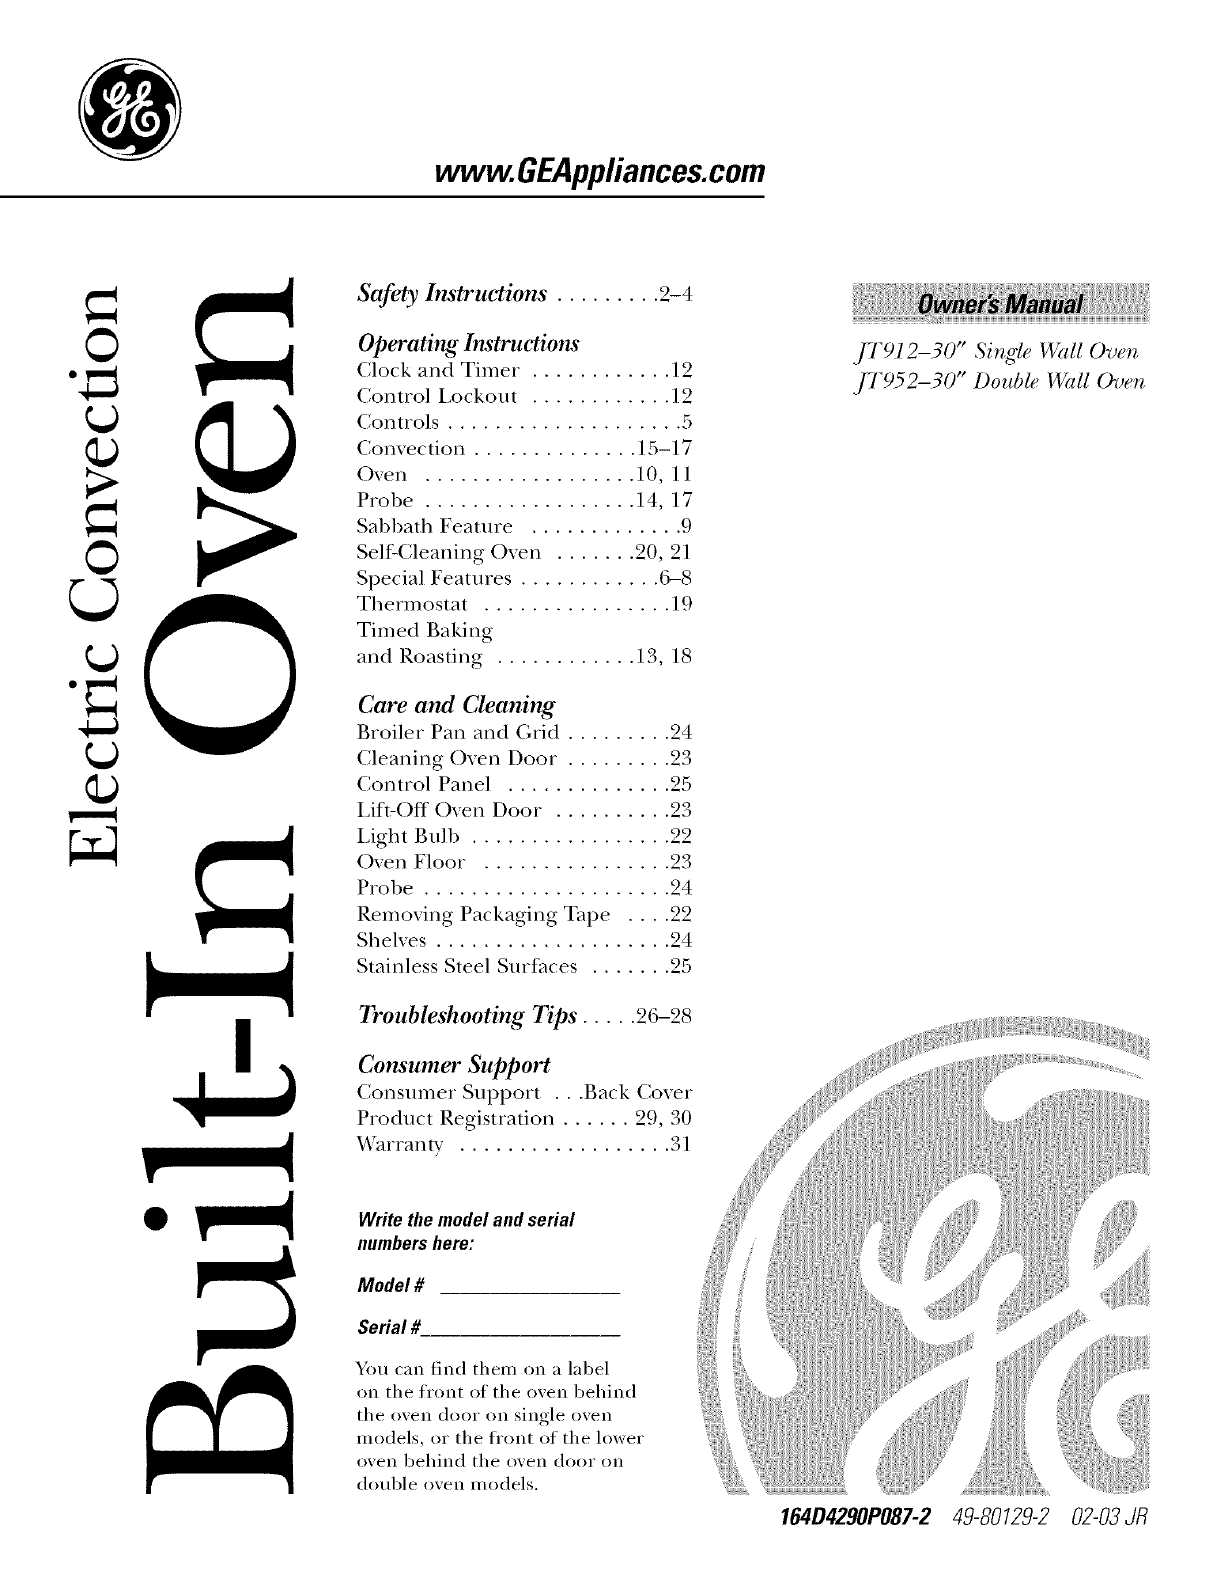 Ge oven j7912 30 user guide manualsonline geappliances publicscrutiny